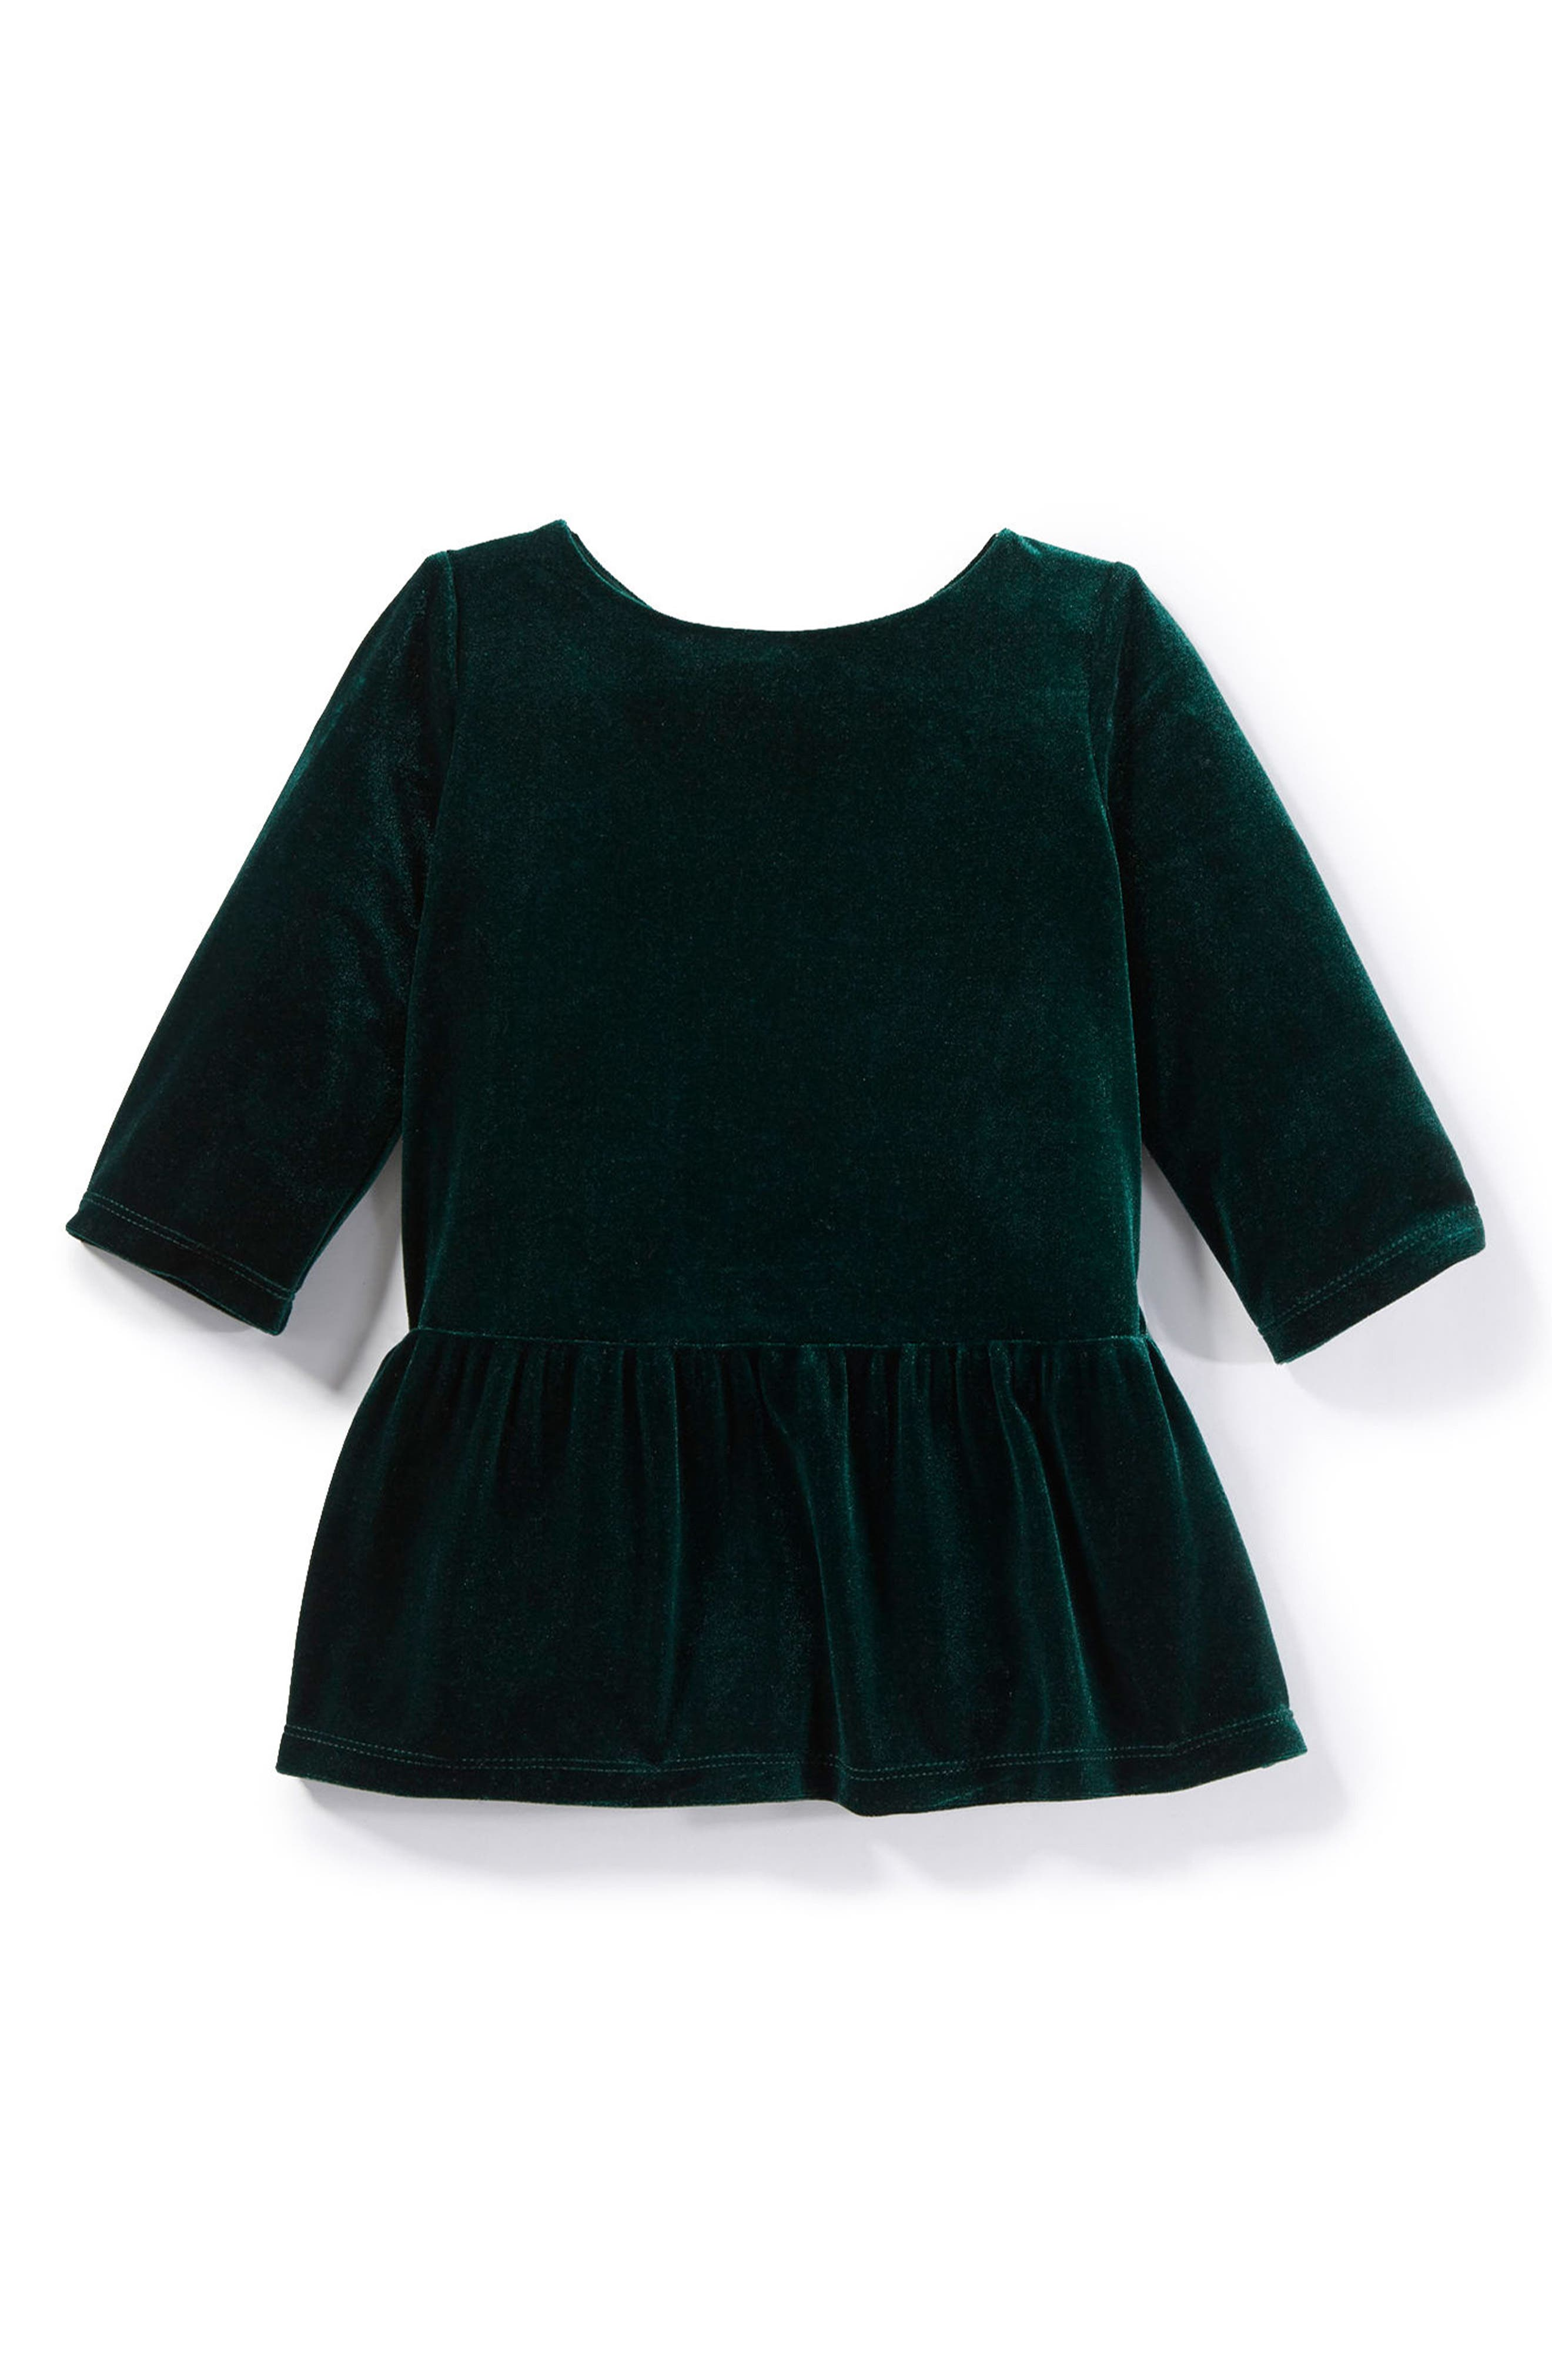 Angelina Velvet Dress,                         Main,                         color, Green